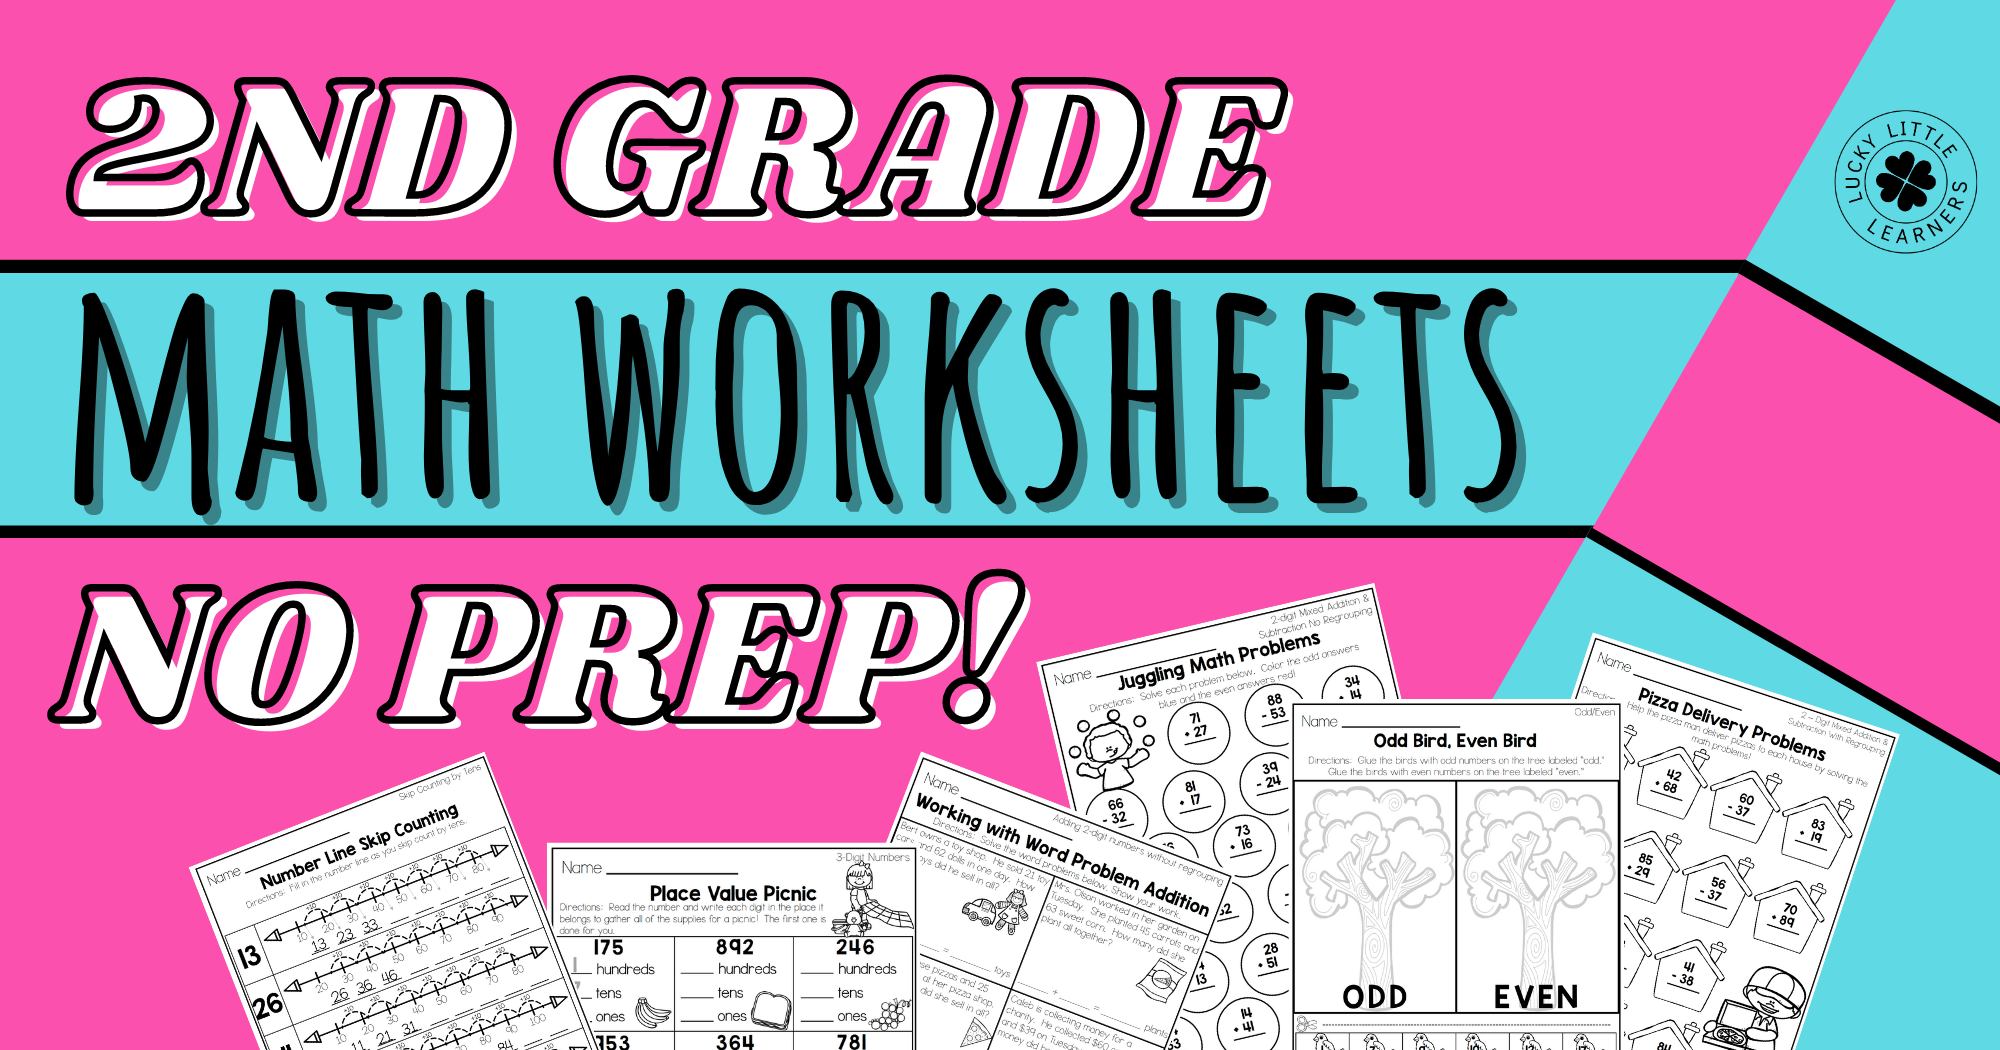 2nd Grade Math Worksheets – No Prep!